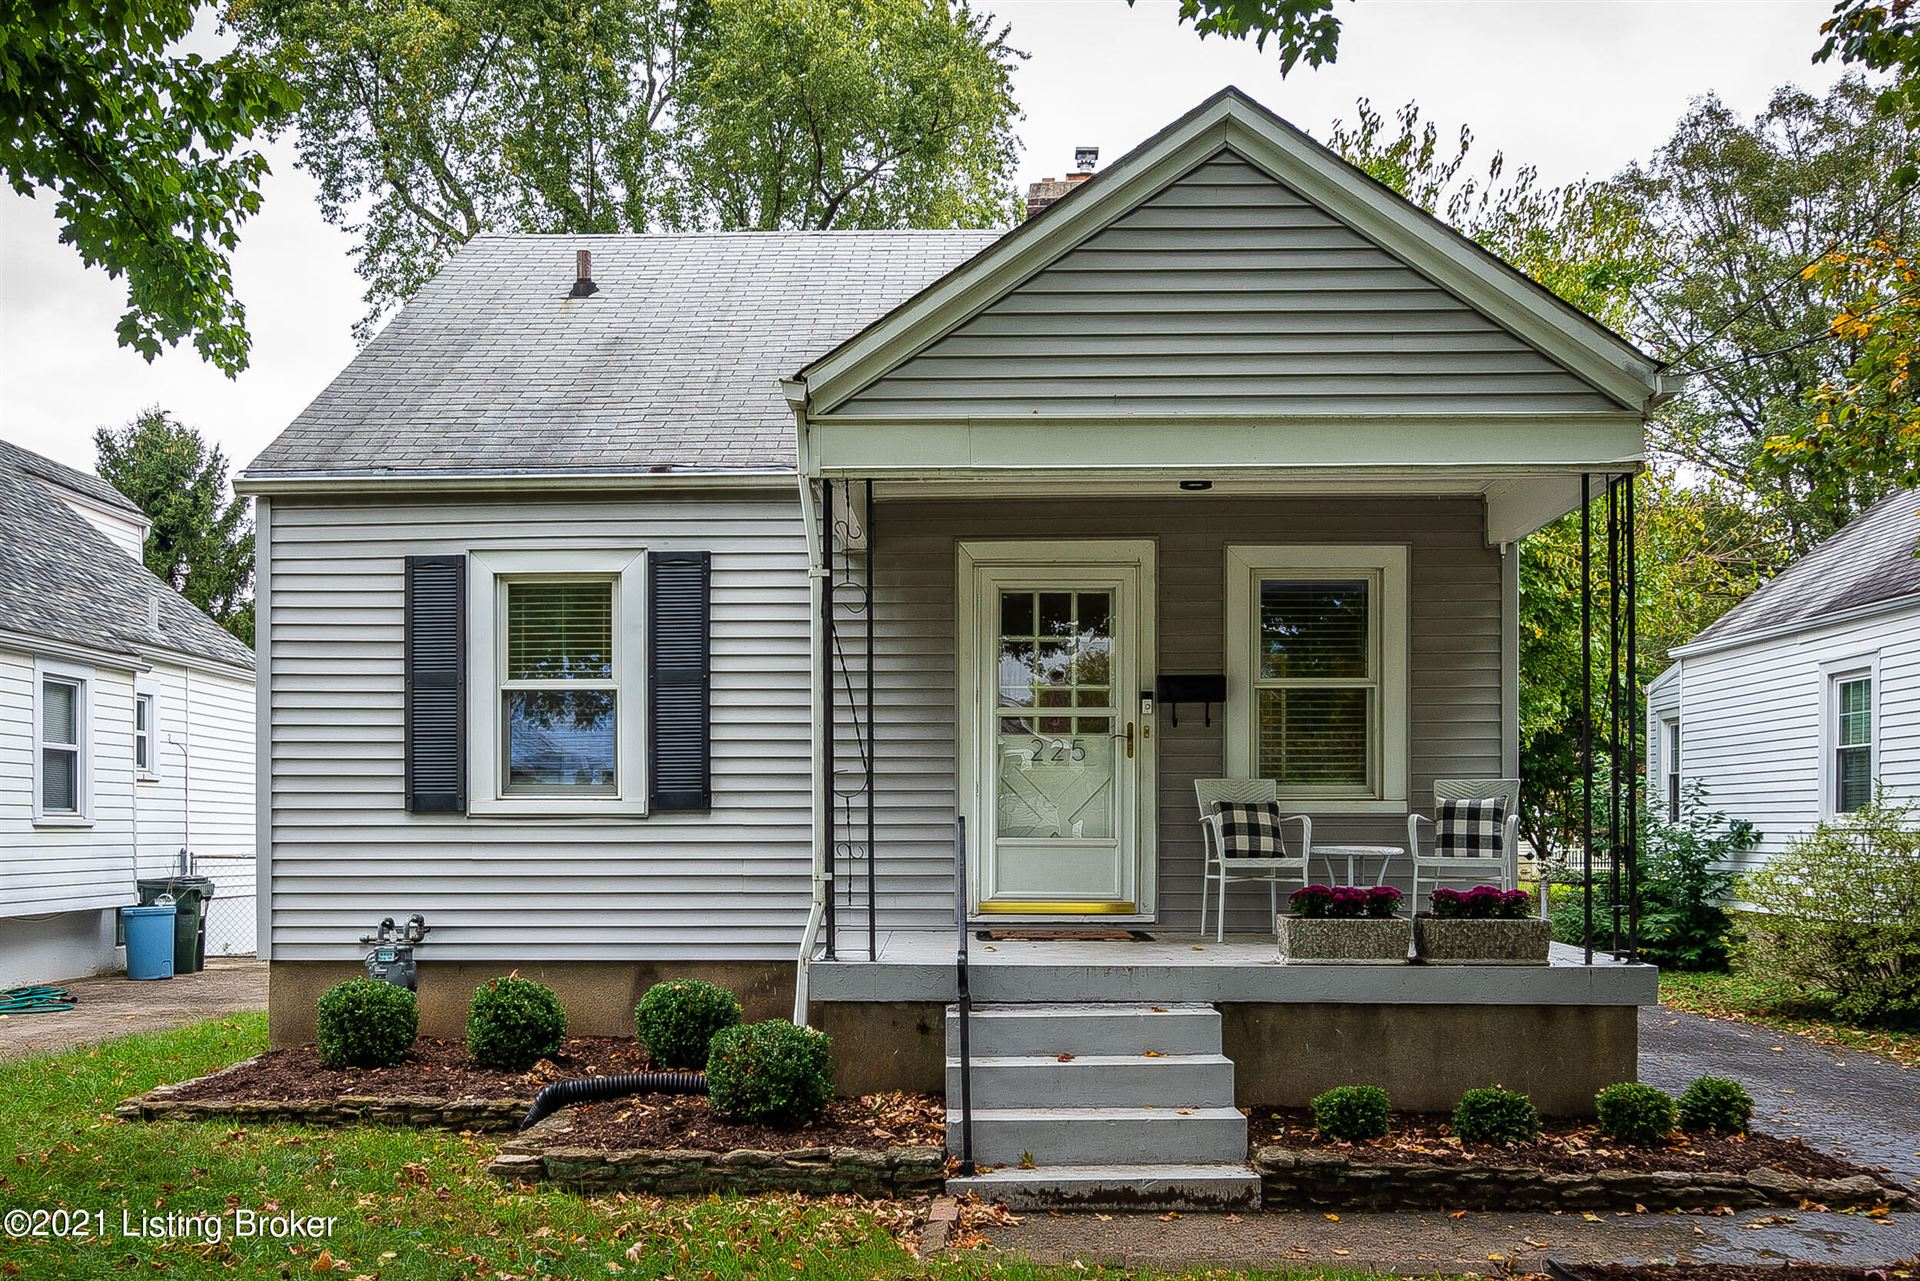 Photo for 225 Clover Ln, Louisville, KY 40207 (MLS # 1598531)